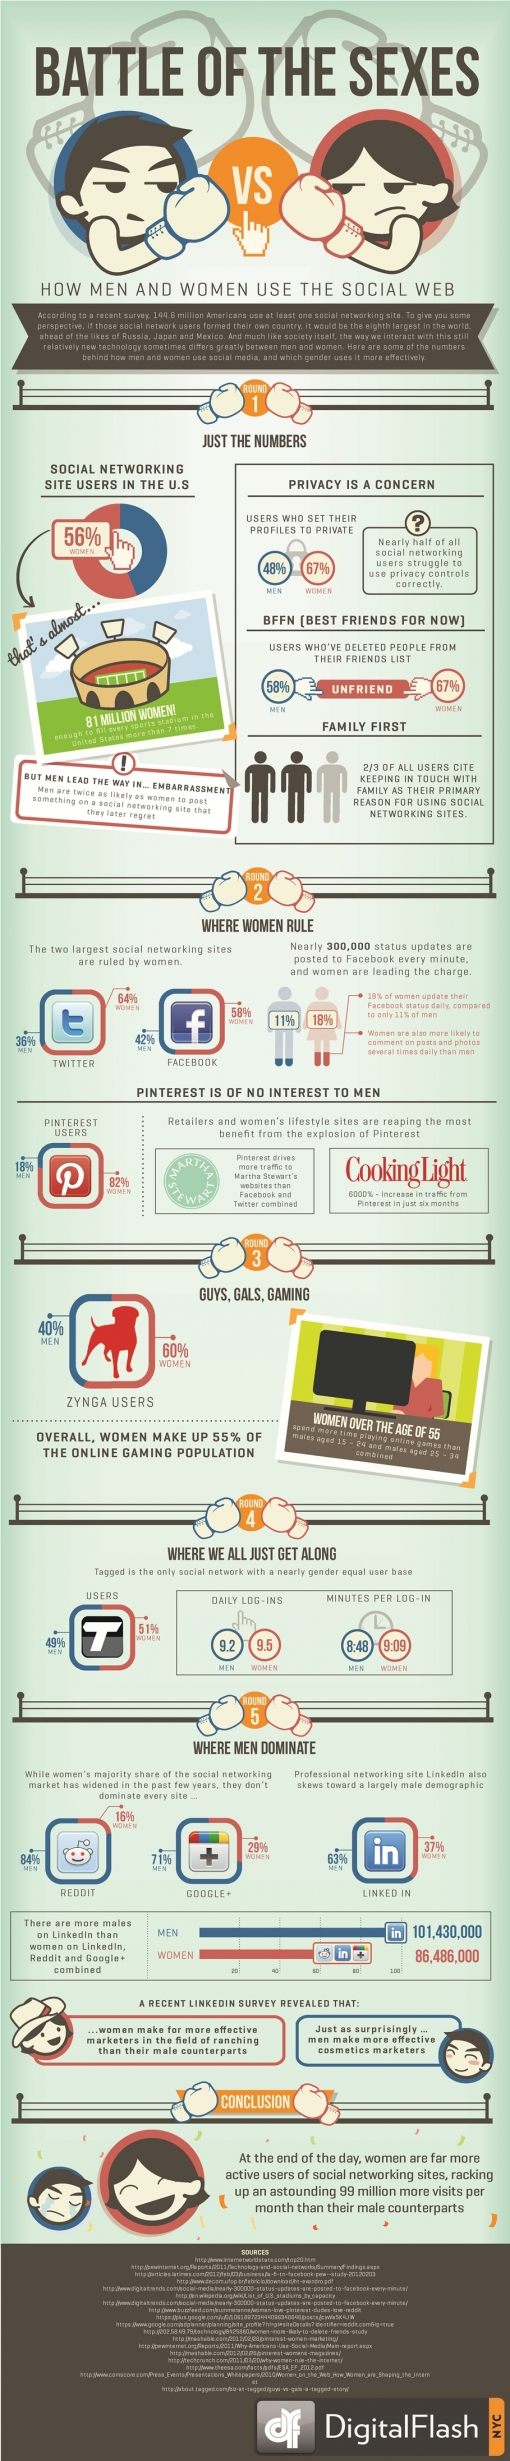 How men and women use the social web. Battle of the sexes. #infographic by DigitalFlash